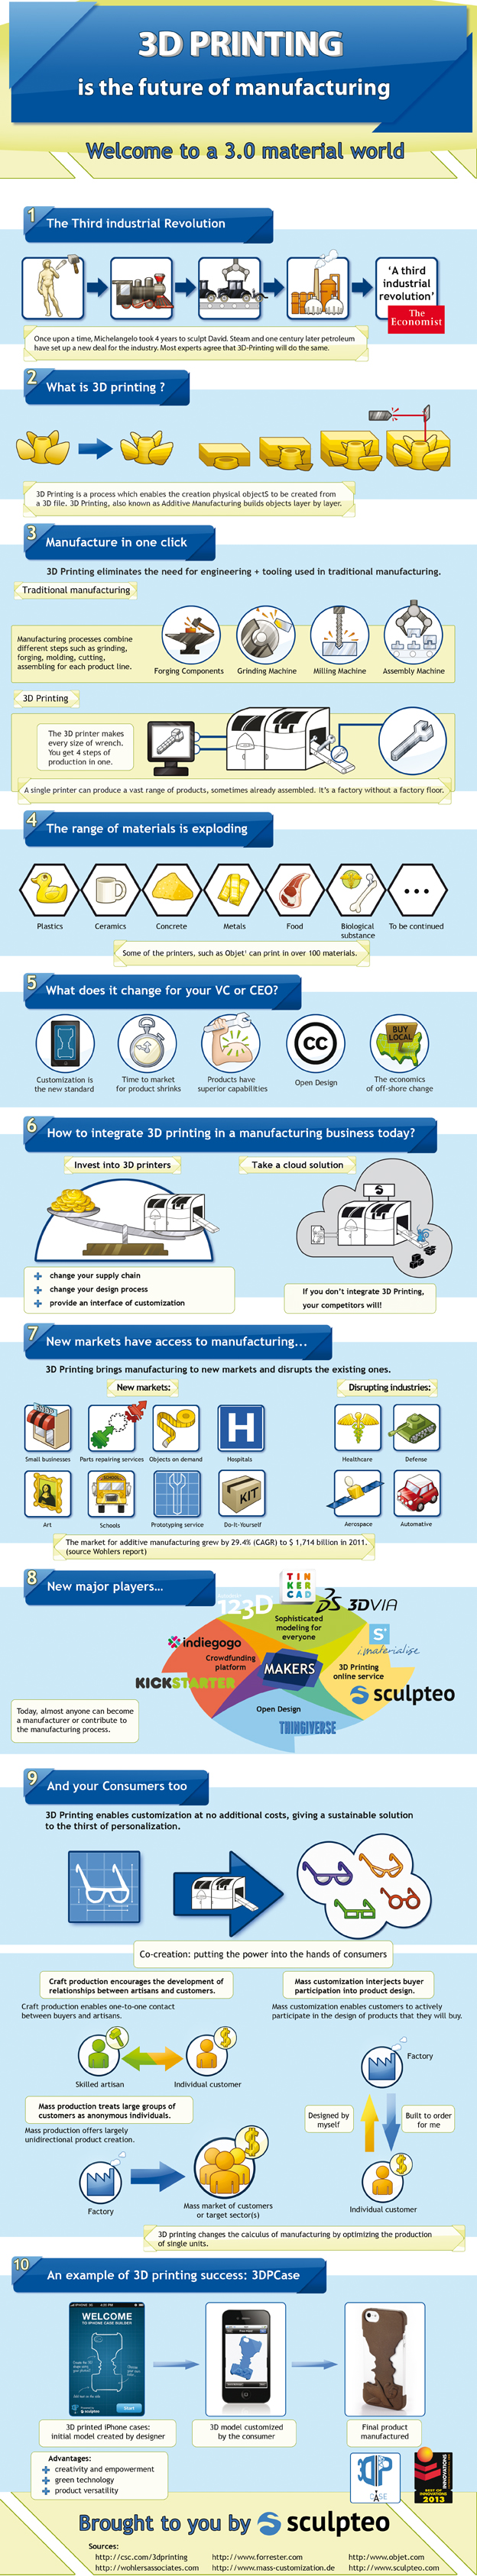 infographic-The_Future_of_Manufacturing_3D-printing